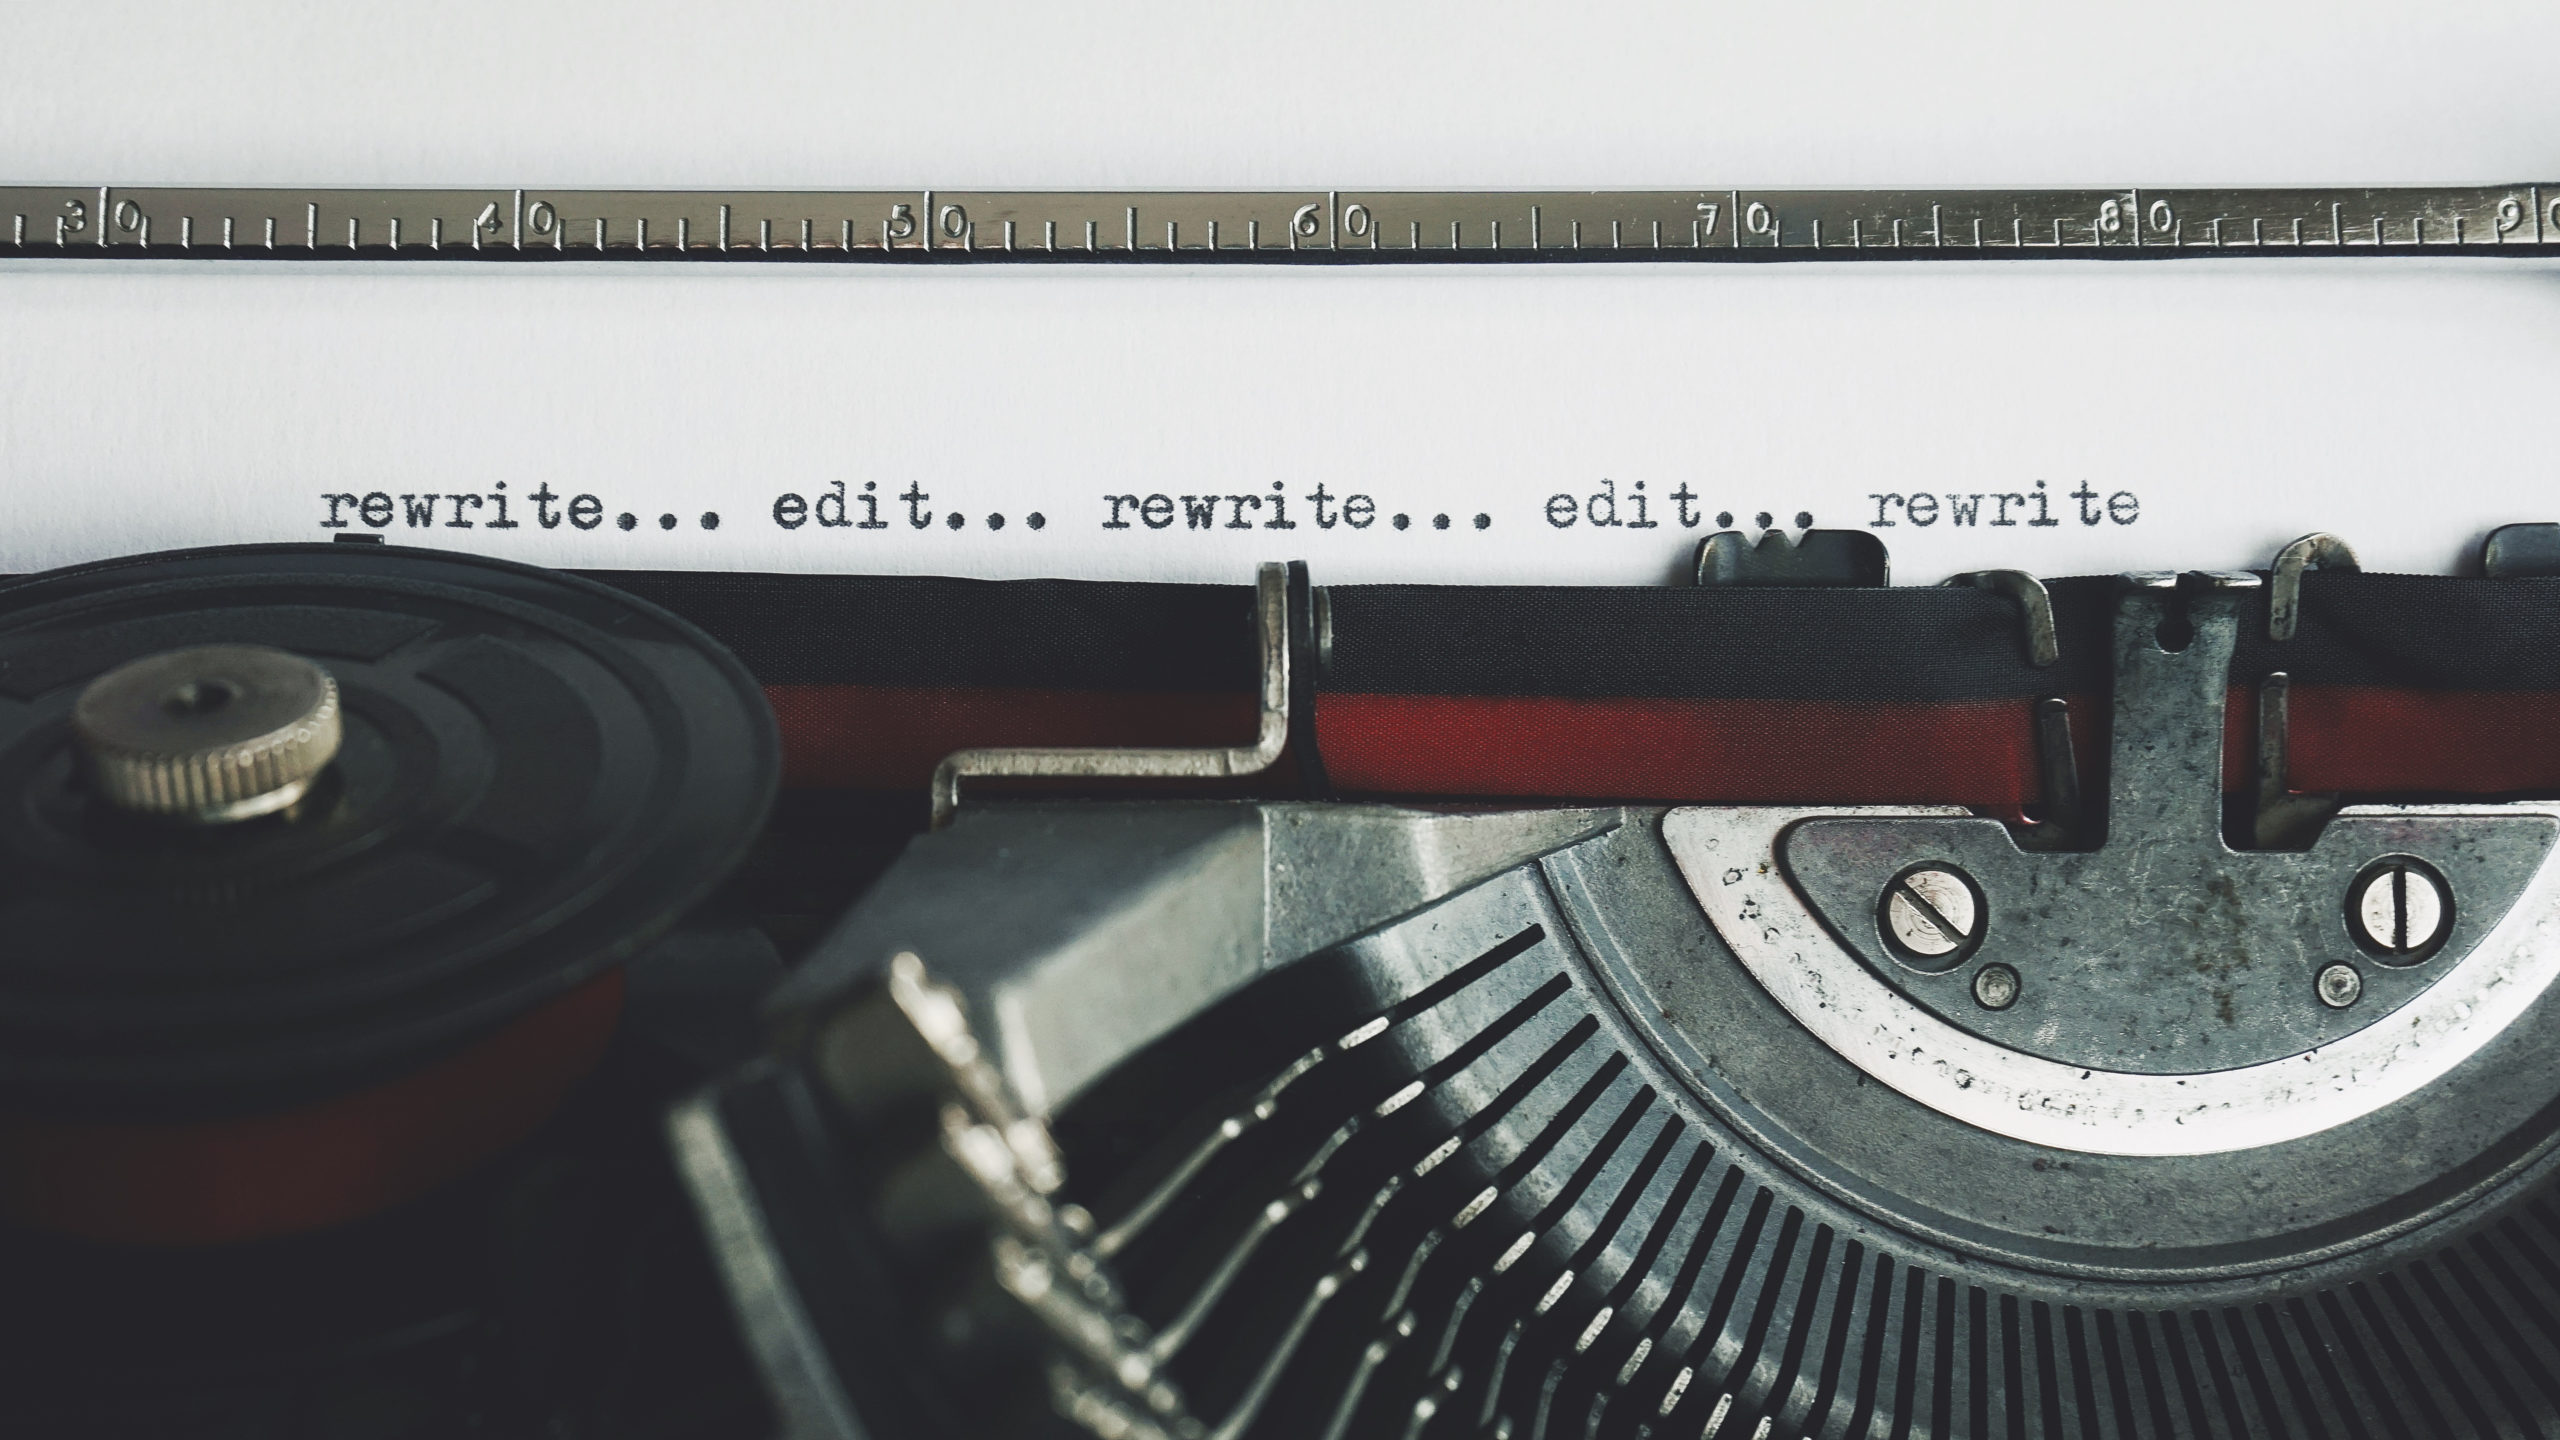 typewriter with rewrite and edit on paper